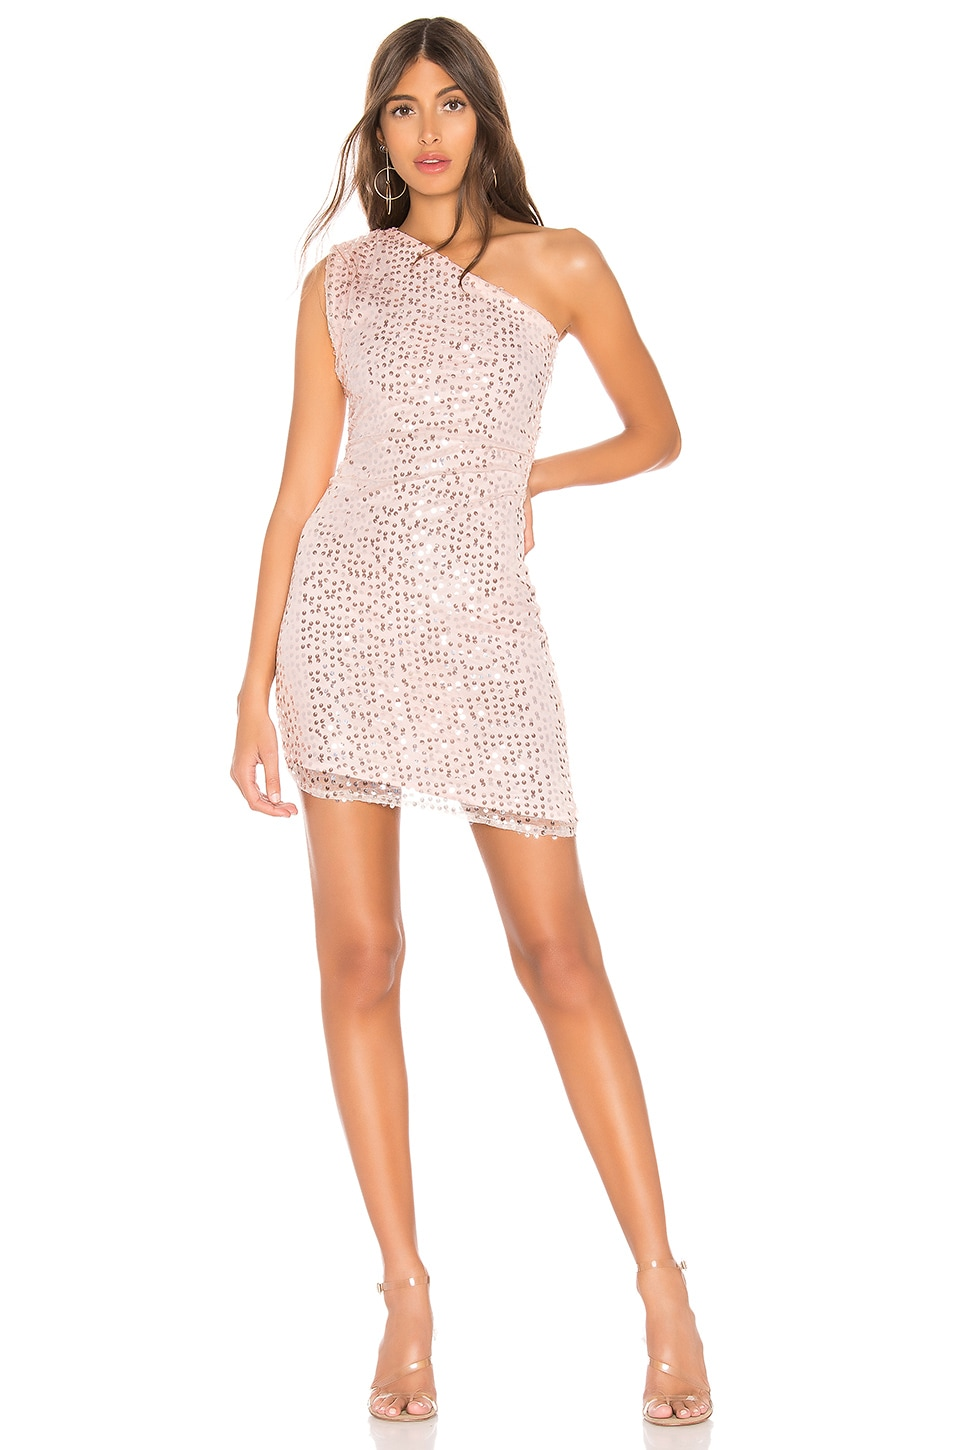 h:ours Hanna Mini Dress in Silver Pink